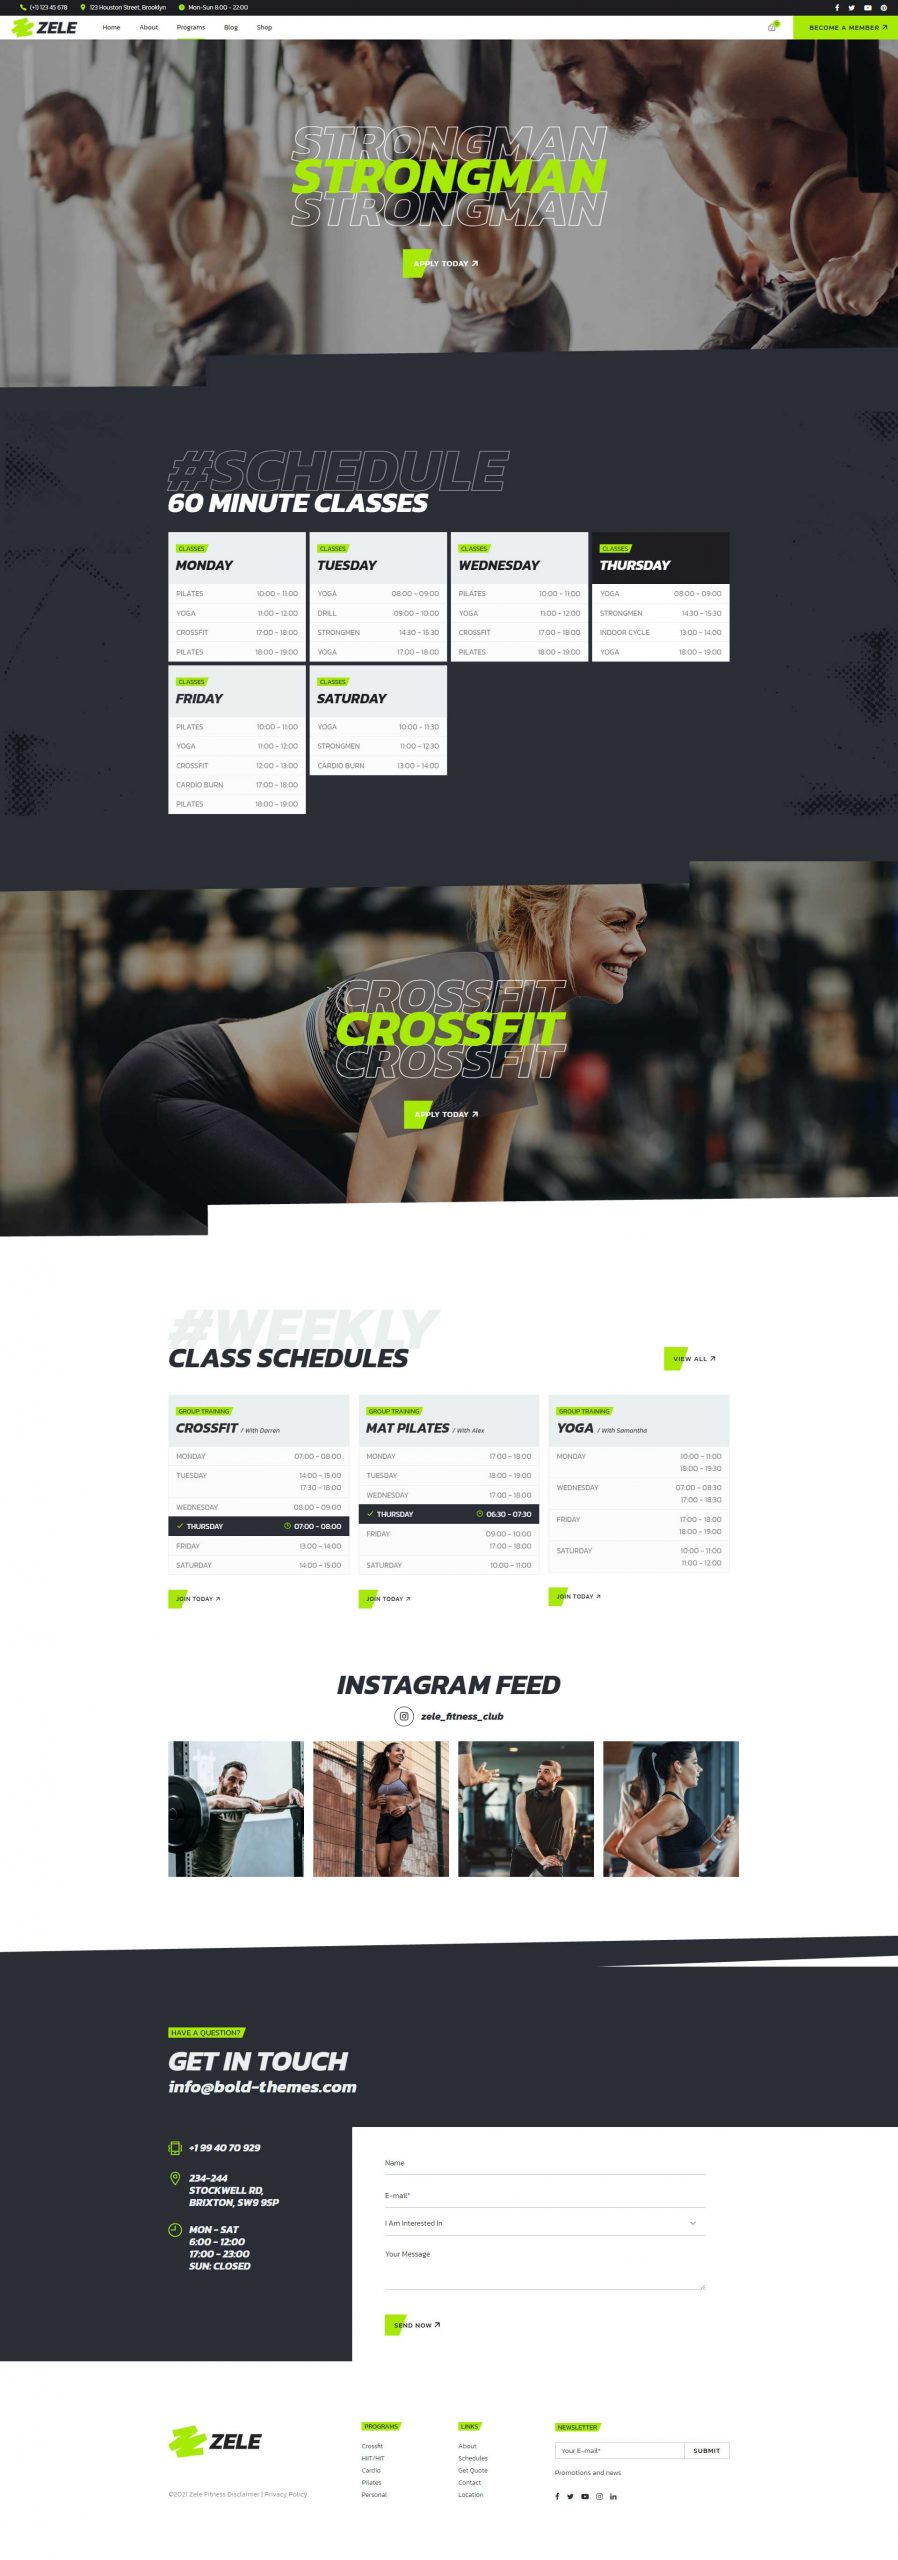 http://zele.bold-themes.com/wp-content/uploads/2021/07/Slant-Schedules-scaled-1.jpg